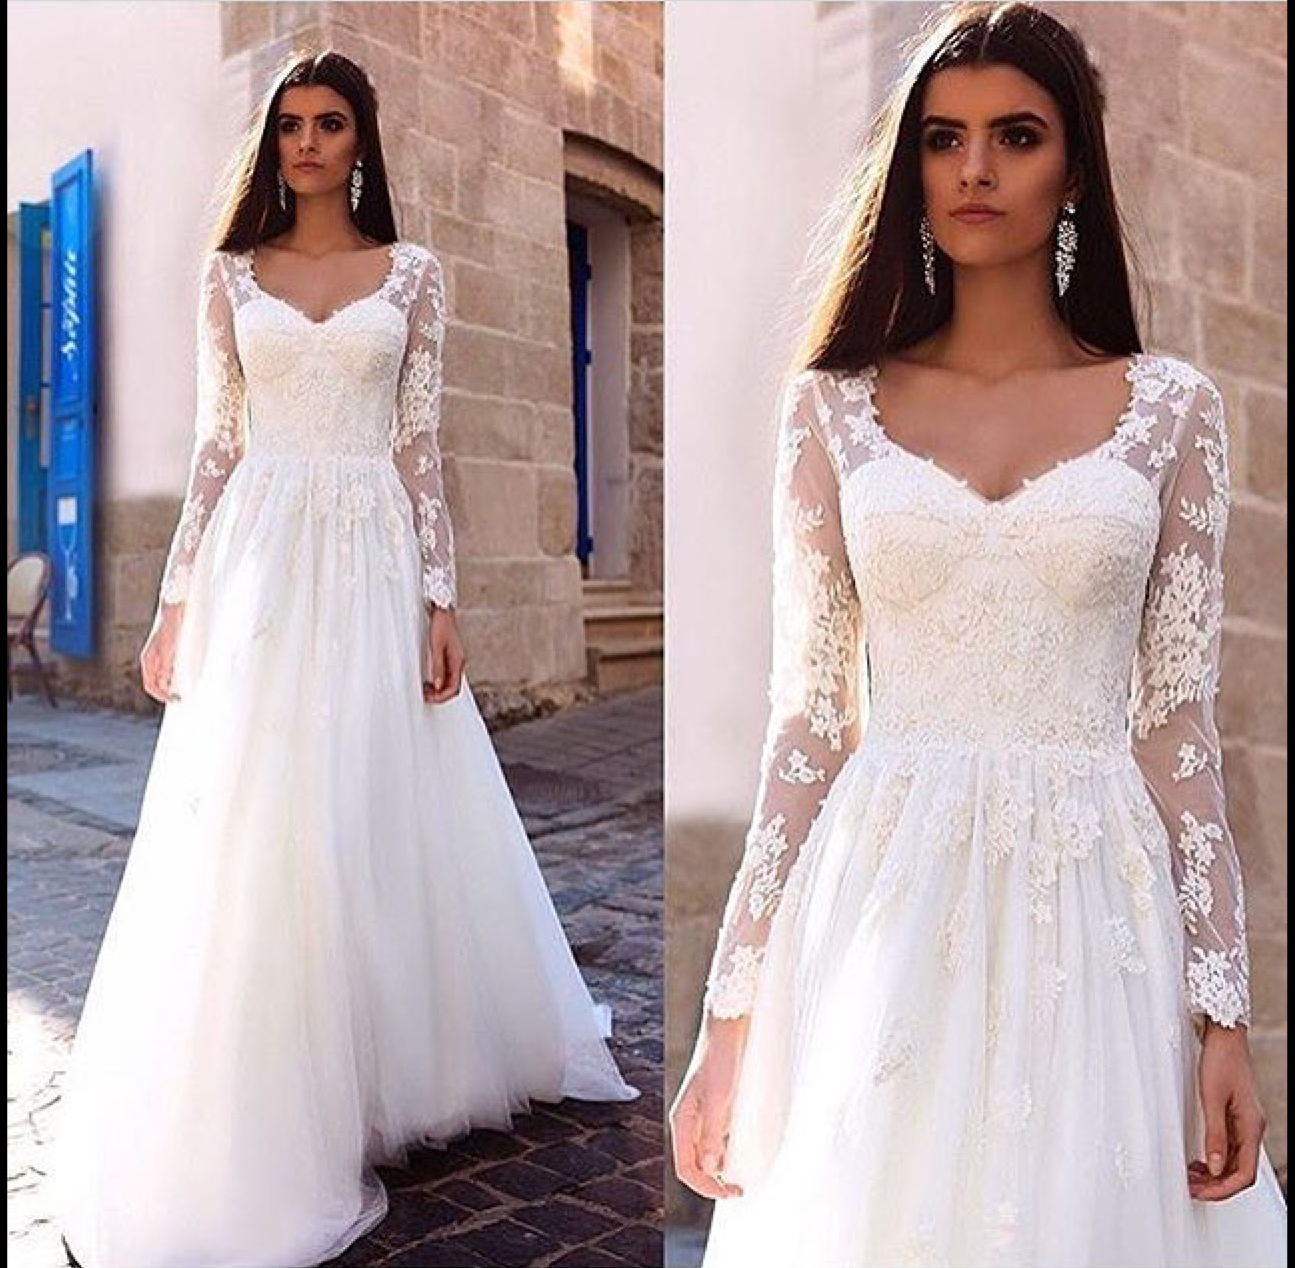 Long Sleeve Lace Wedding Dress Lace Ball Gown Vintage